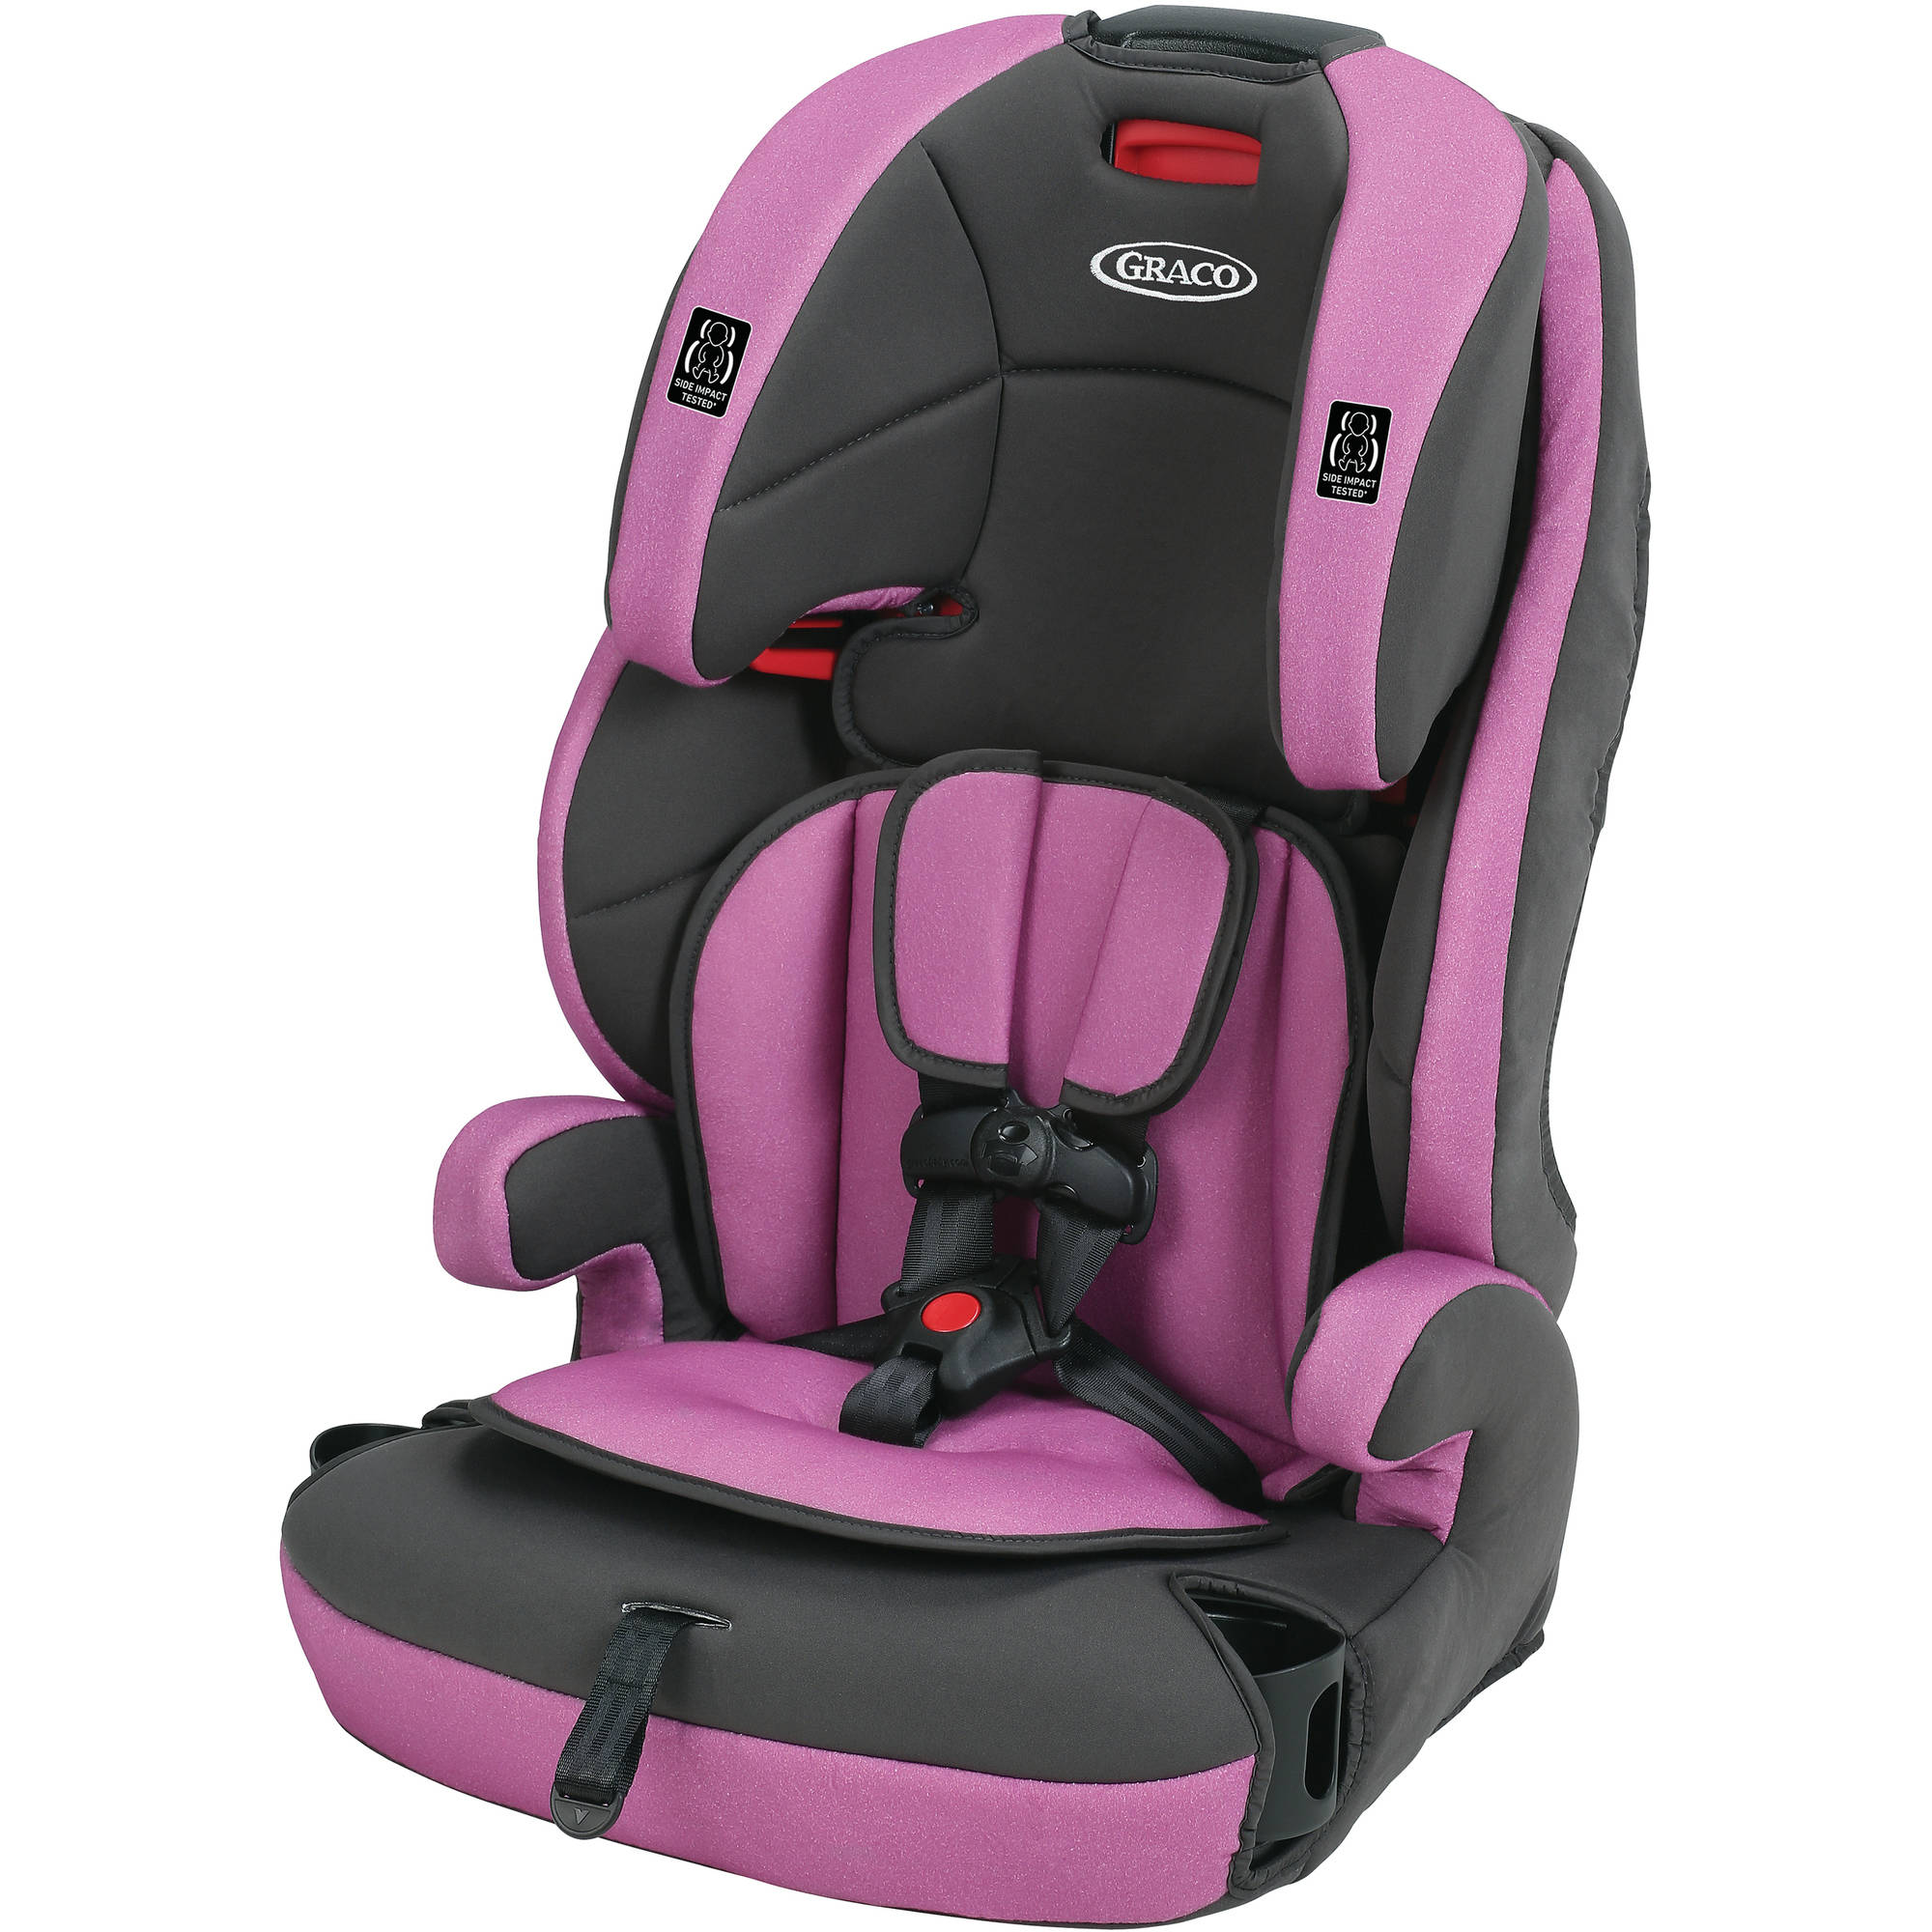 Graco Tranzitions 3-in-1 Harness Booster Seat, Kyte by Graco